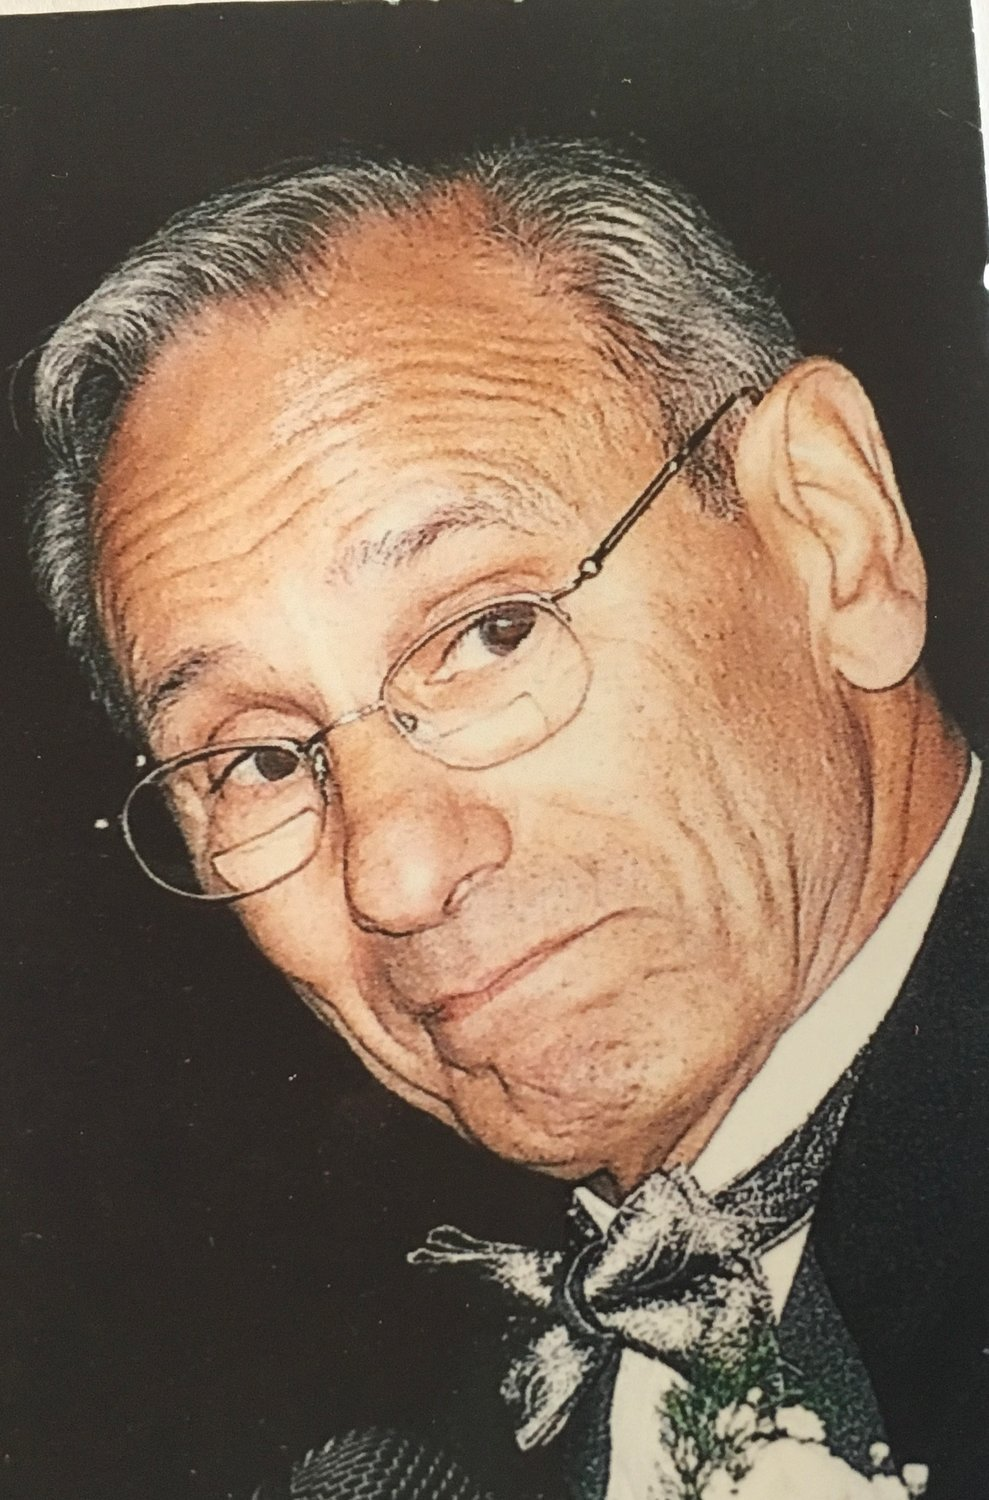 Former Lynbrook Mayor Eugene Scarpato died on Tuesday of heart complications at 89. In addition to serving as mayor from 1995 to 2007, he helped build the village pool.